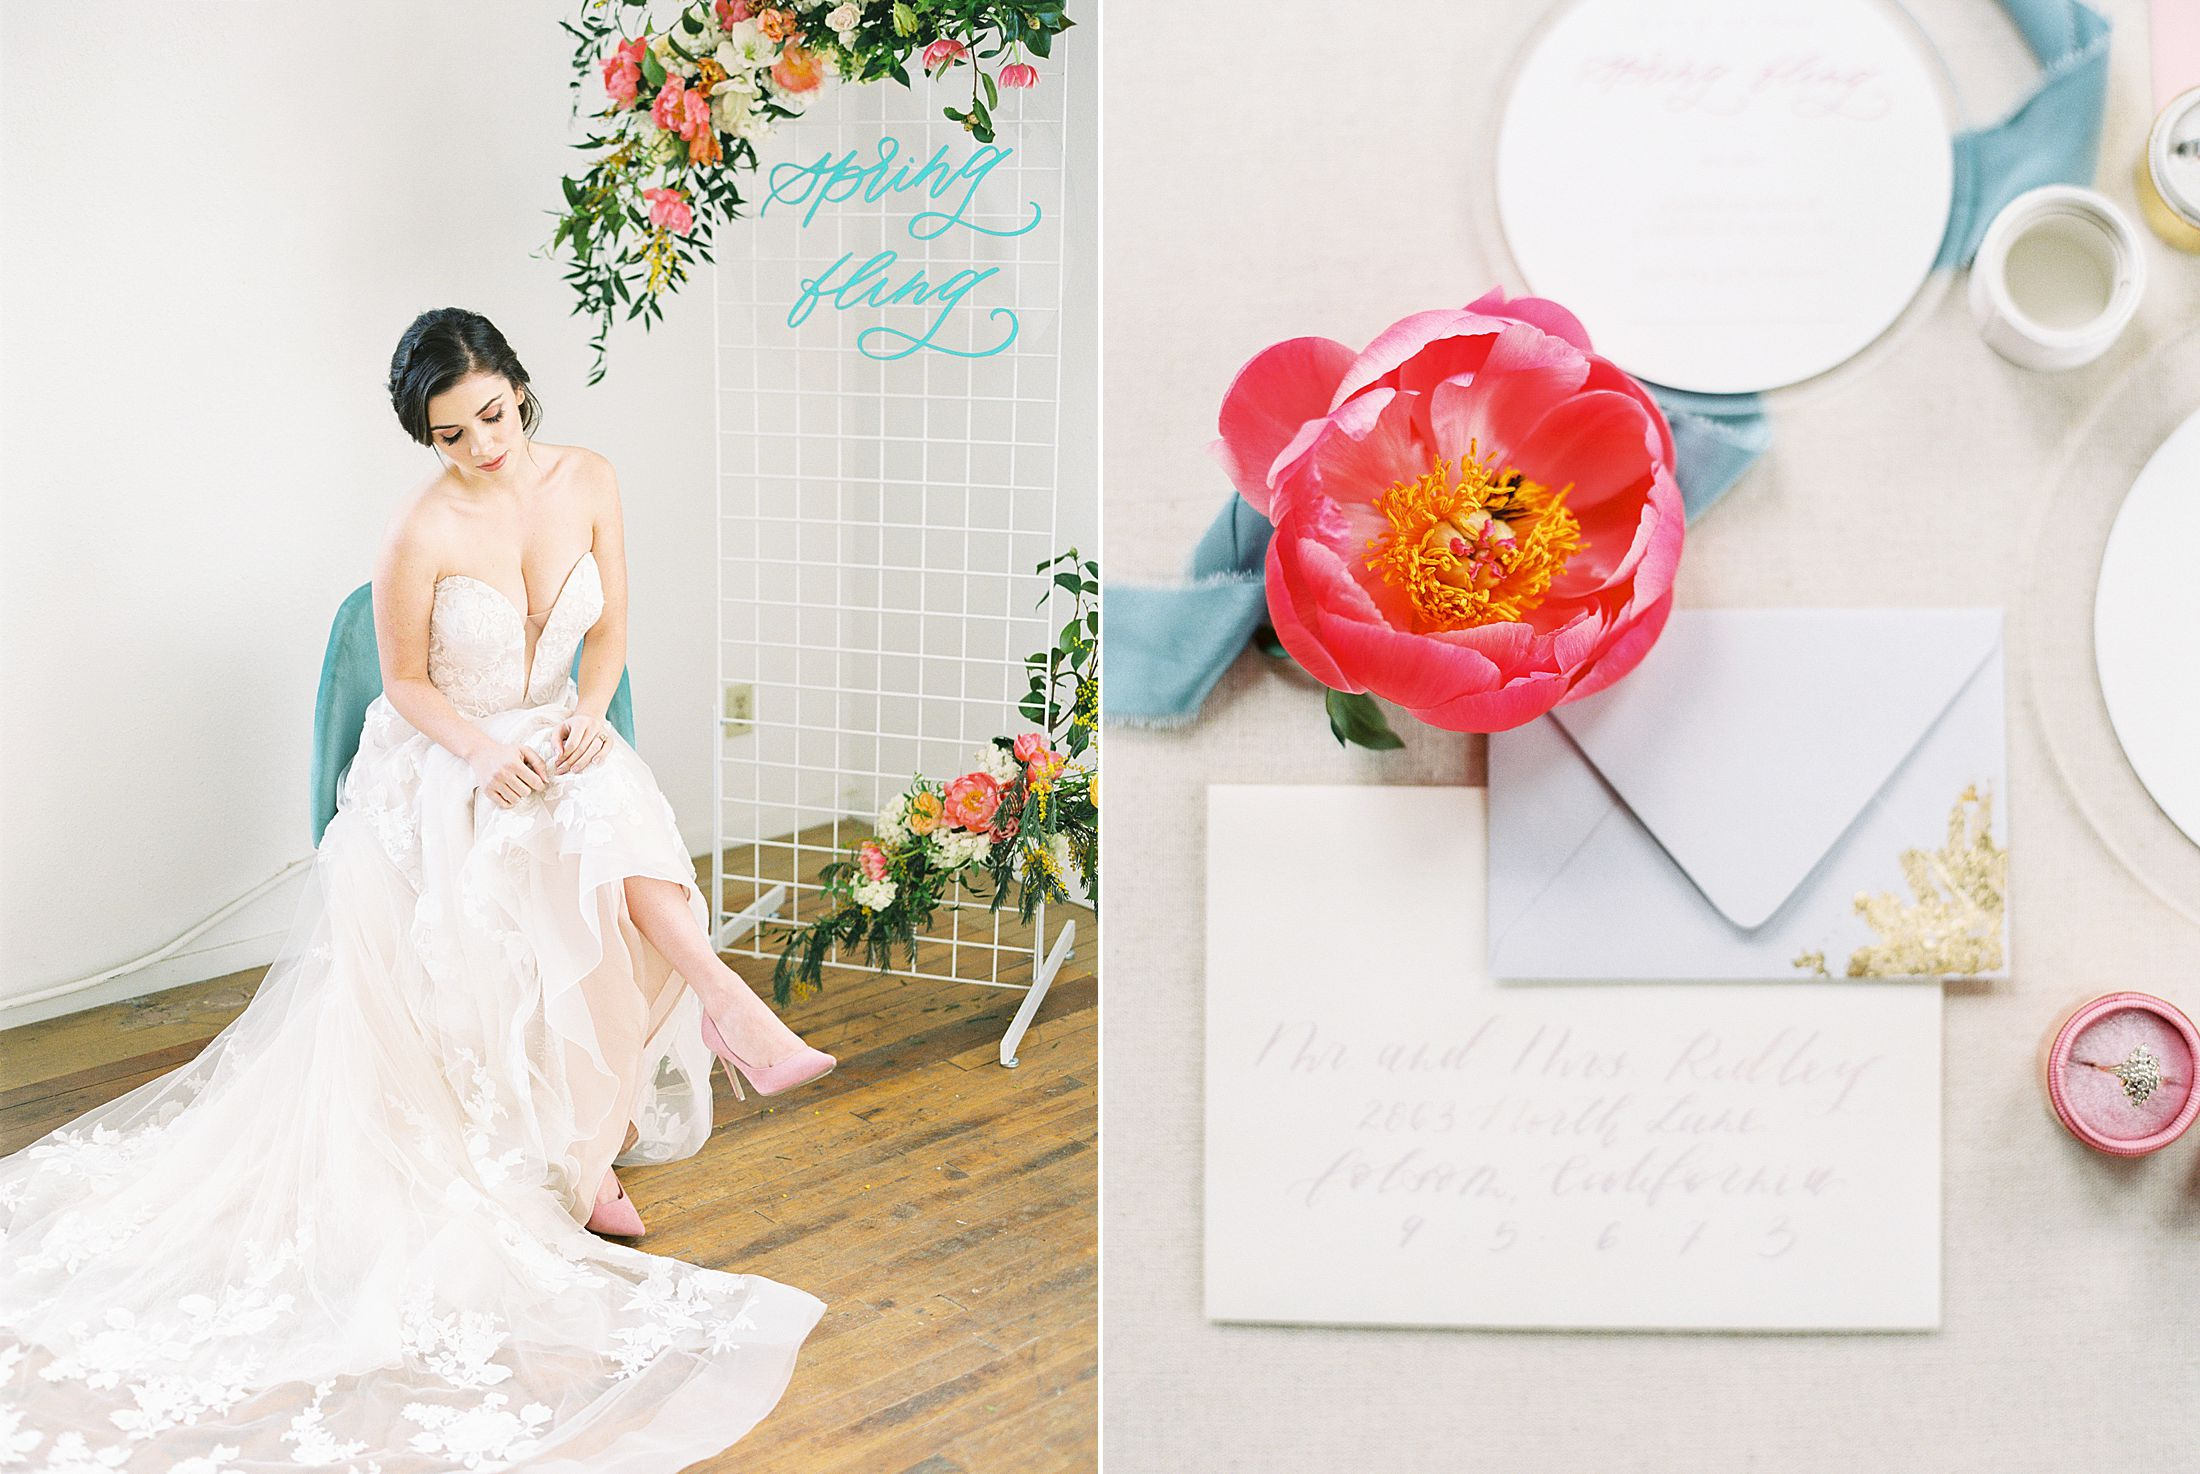 Bay Area Spring Wedding Inspiration - Ashley Baumgartner - Inspired By This - Party Crush Studio and Lens of Lenox Videography - Bay Area Wedding Photography_0049.jpg